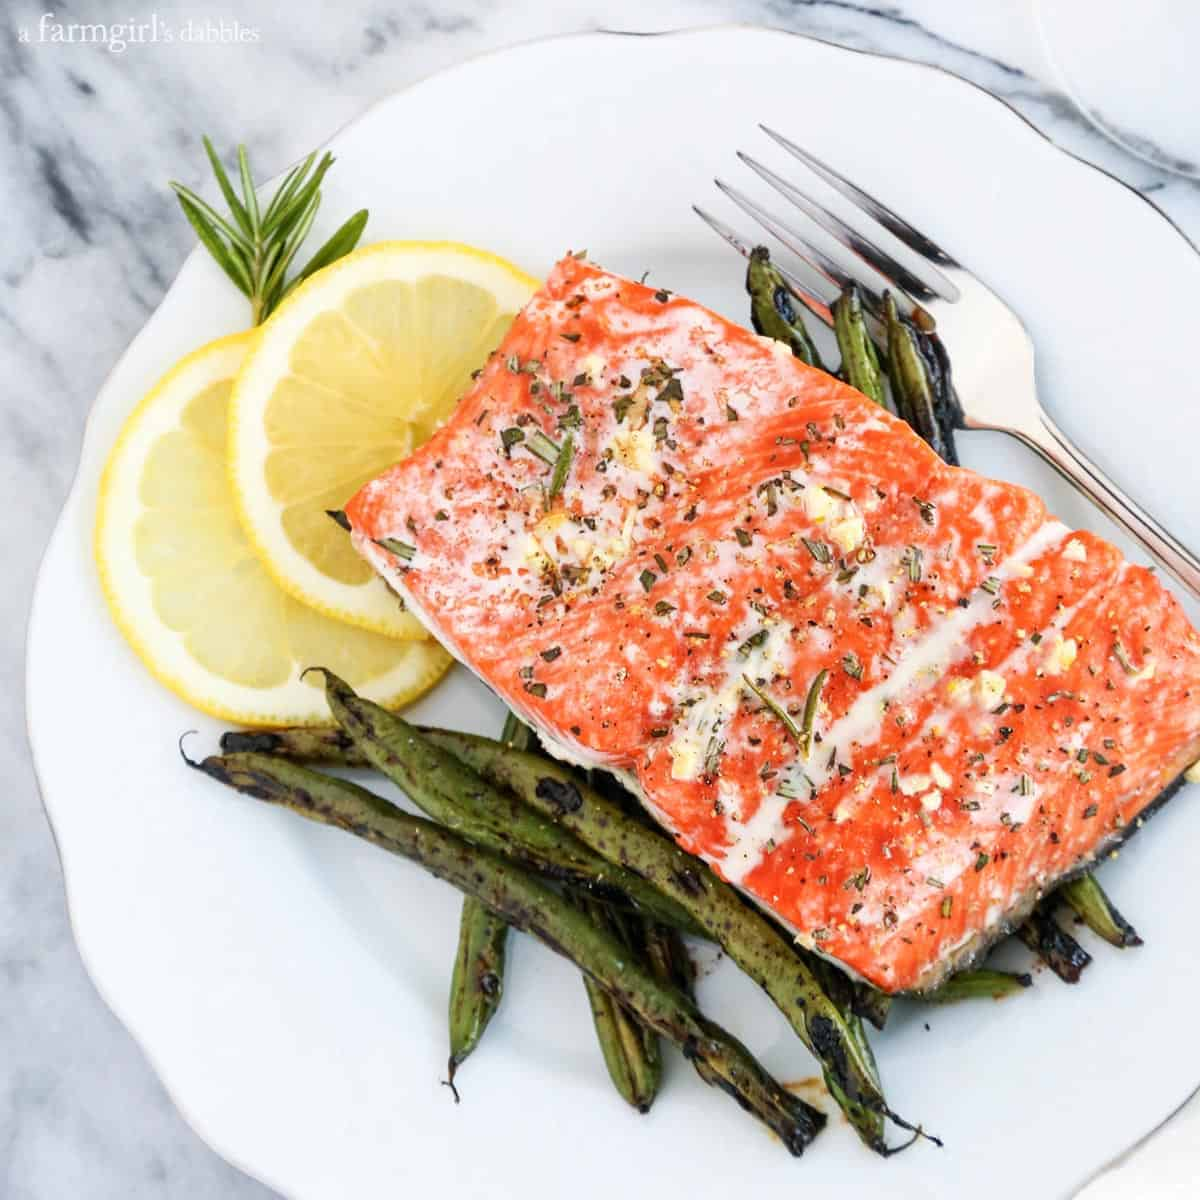 10-Minute Garlic and Rosemary Roasted Salmon from afarmgirlsdabbles.com